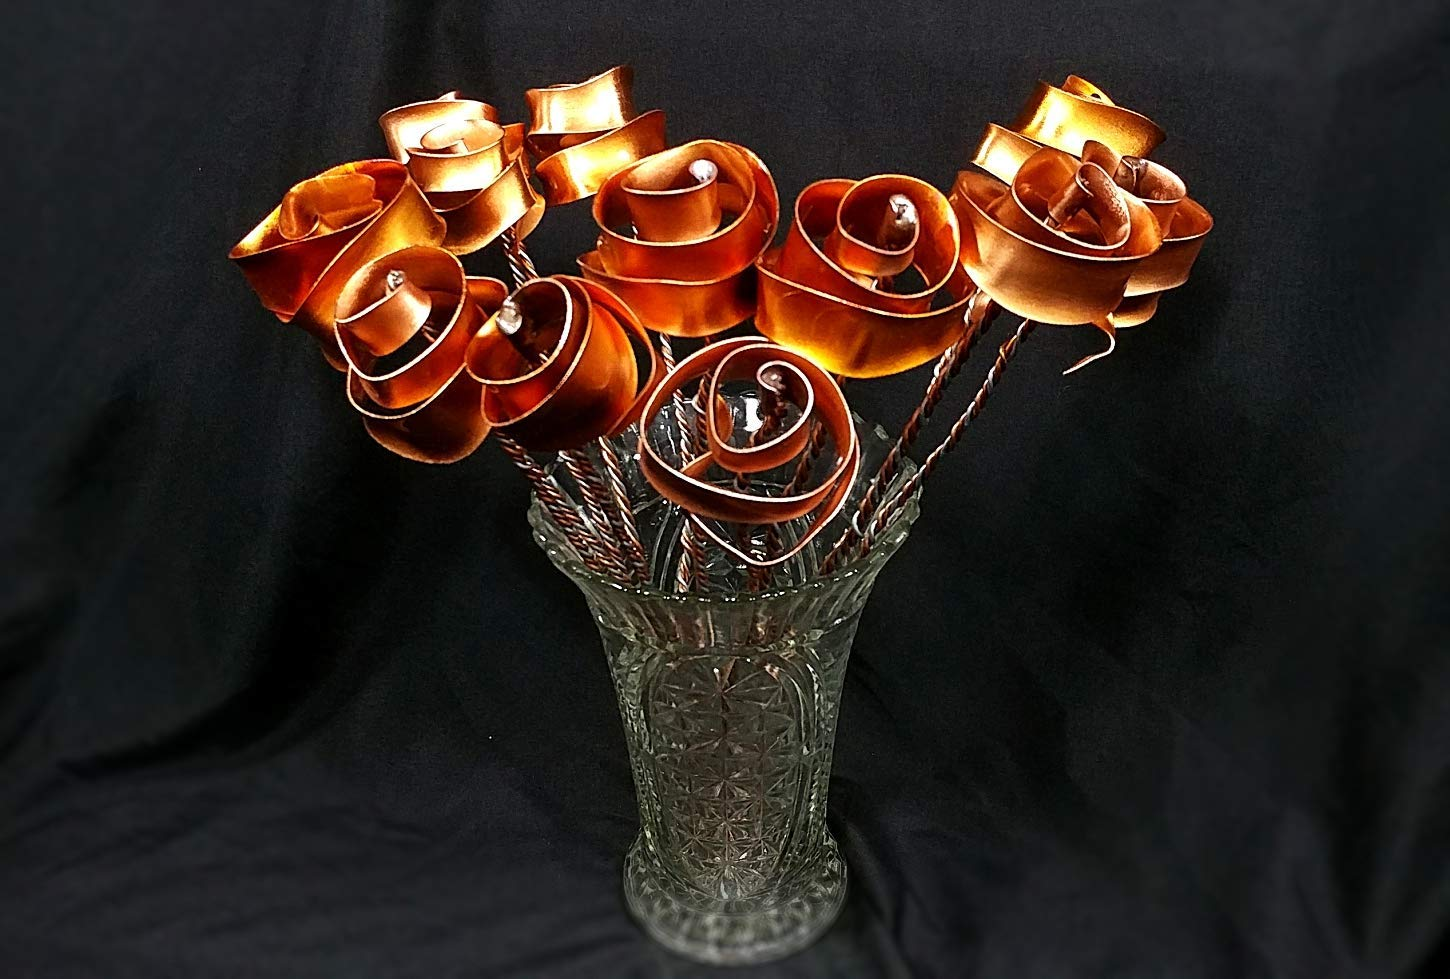 Set of 3 Bright Copper Forever Roses #813'' I Love You'' Steampunk - Wedding Prom Graduation 7th Anniversary Regalo de Aniversario Hanukkah Kwanzaa Valentine's Mother's Day Christmas Gift ! by Refreshing Art (Image #2)